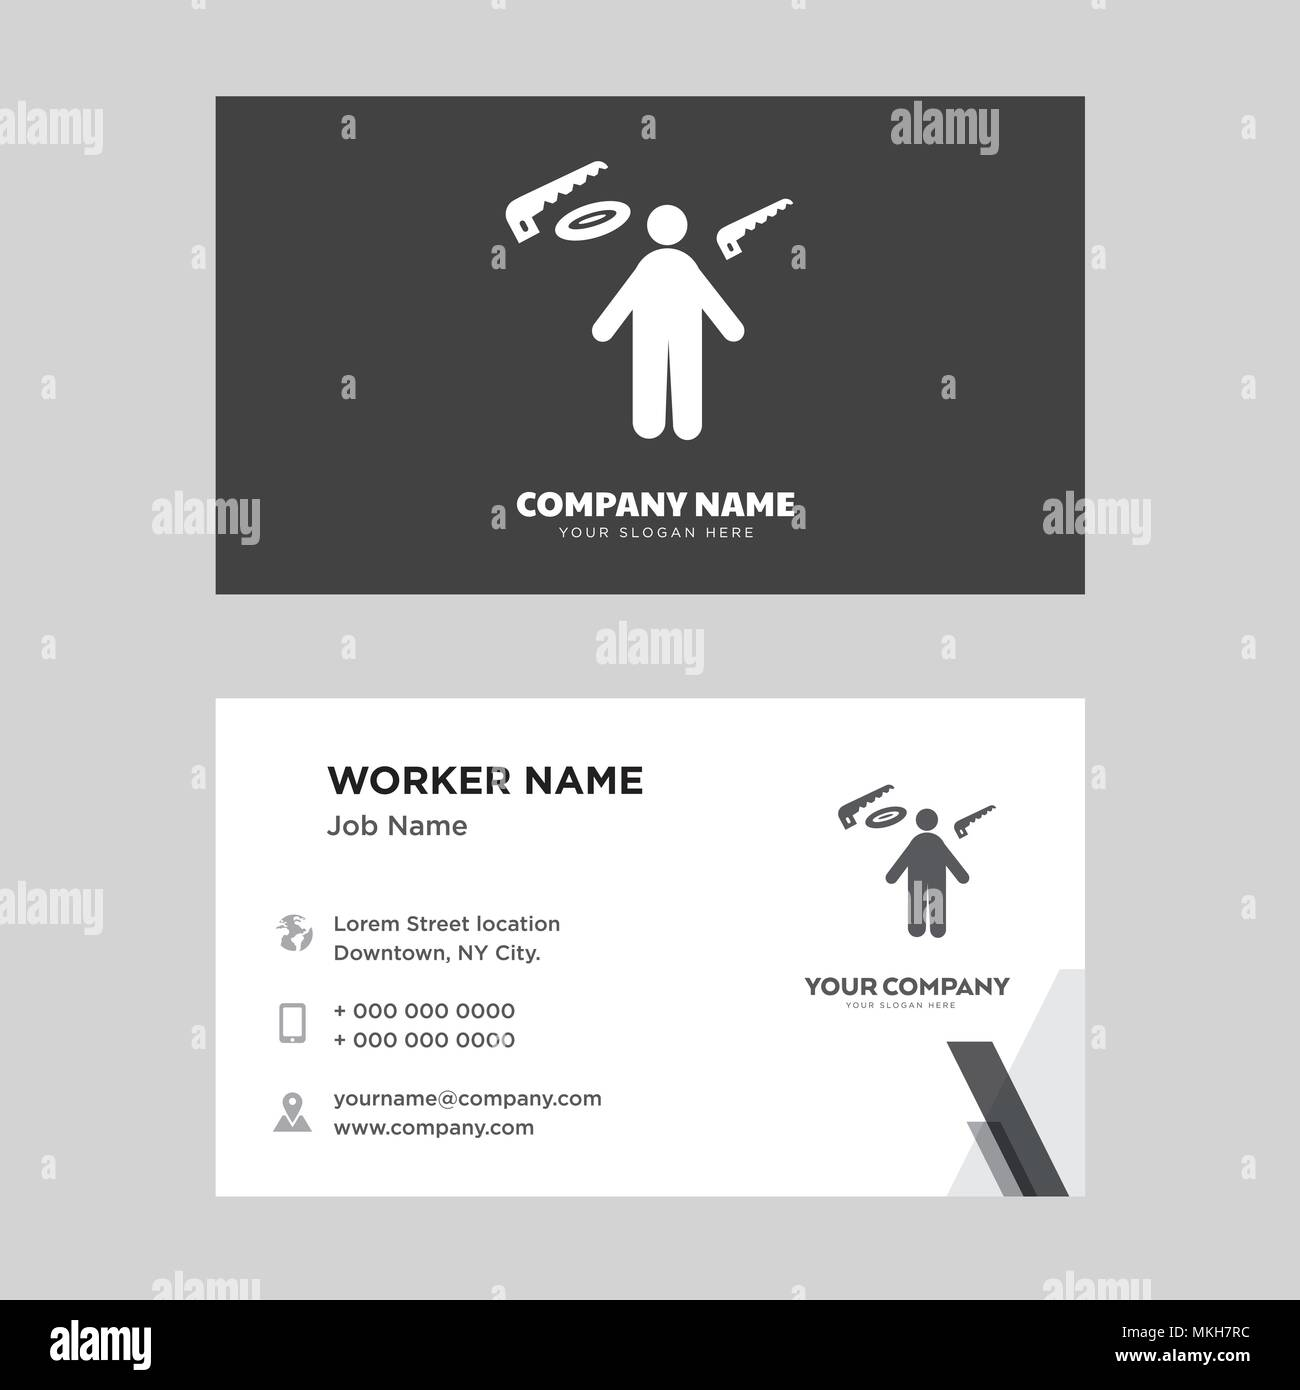 Carpenter business card design template visiting for your company carpenter business card design template visiting for your company modern horizontal identity card vector cheaphphosting Gallery